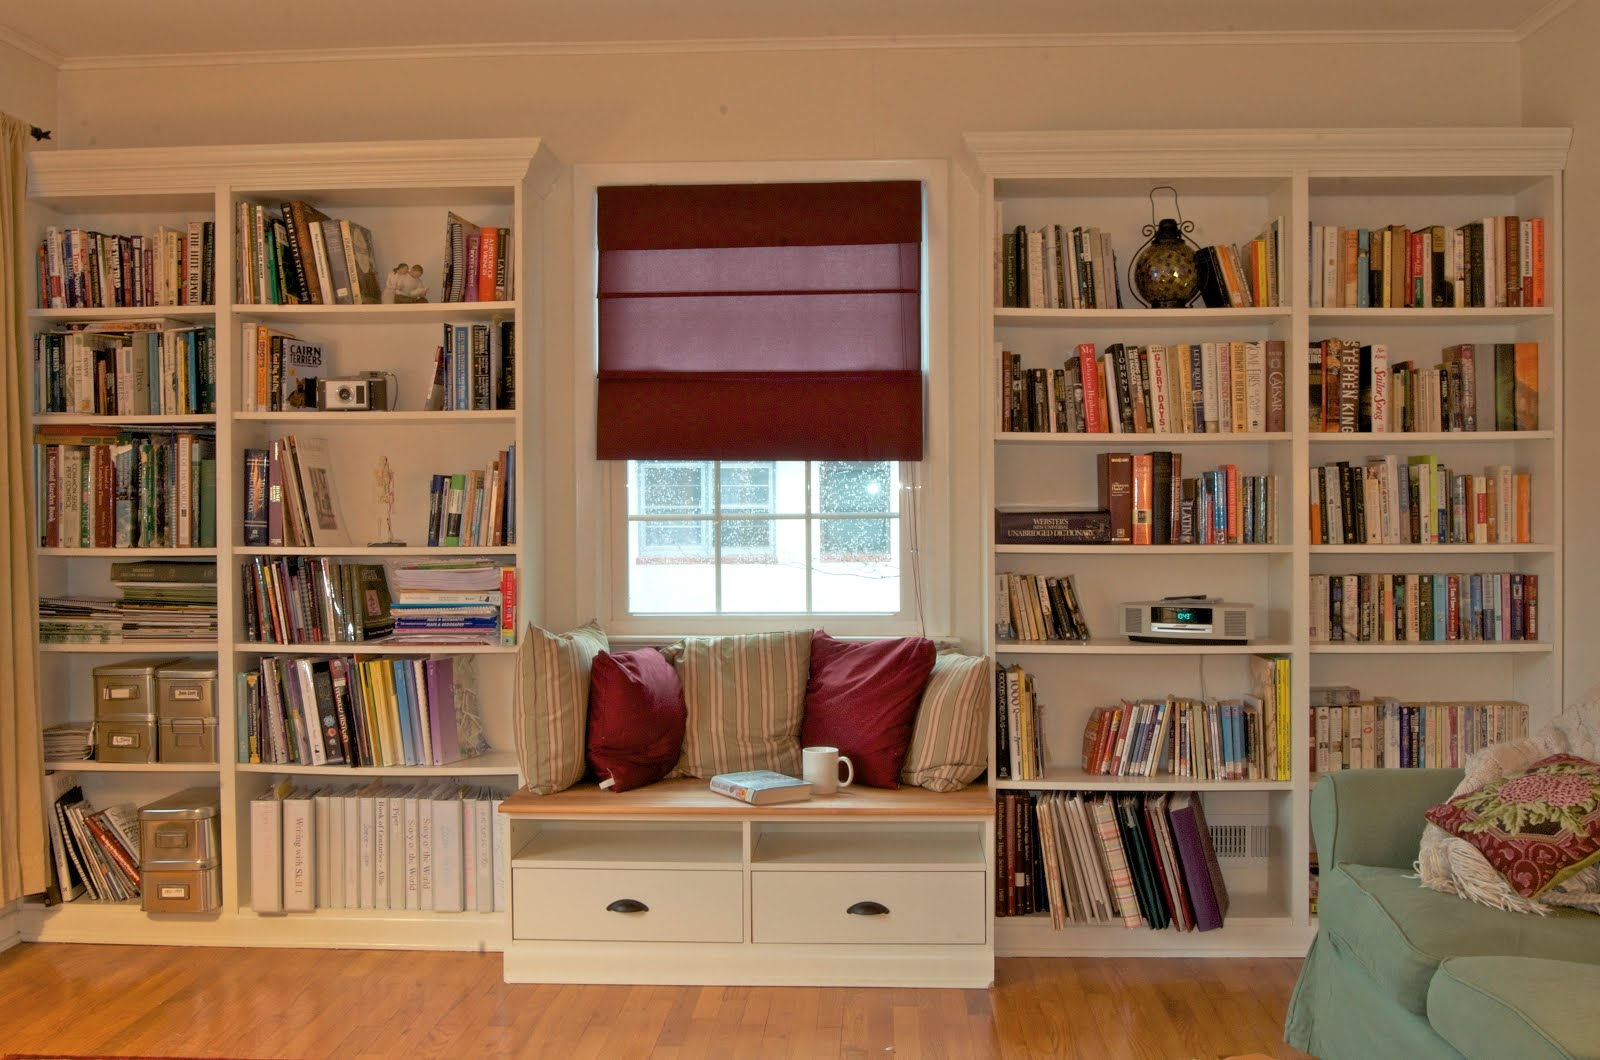 Built In Bookshelves With Window Seat For Under 350 Ikea With Bookshelves (#10 of 15)